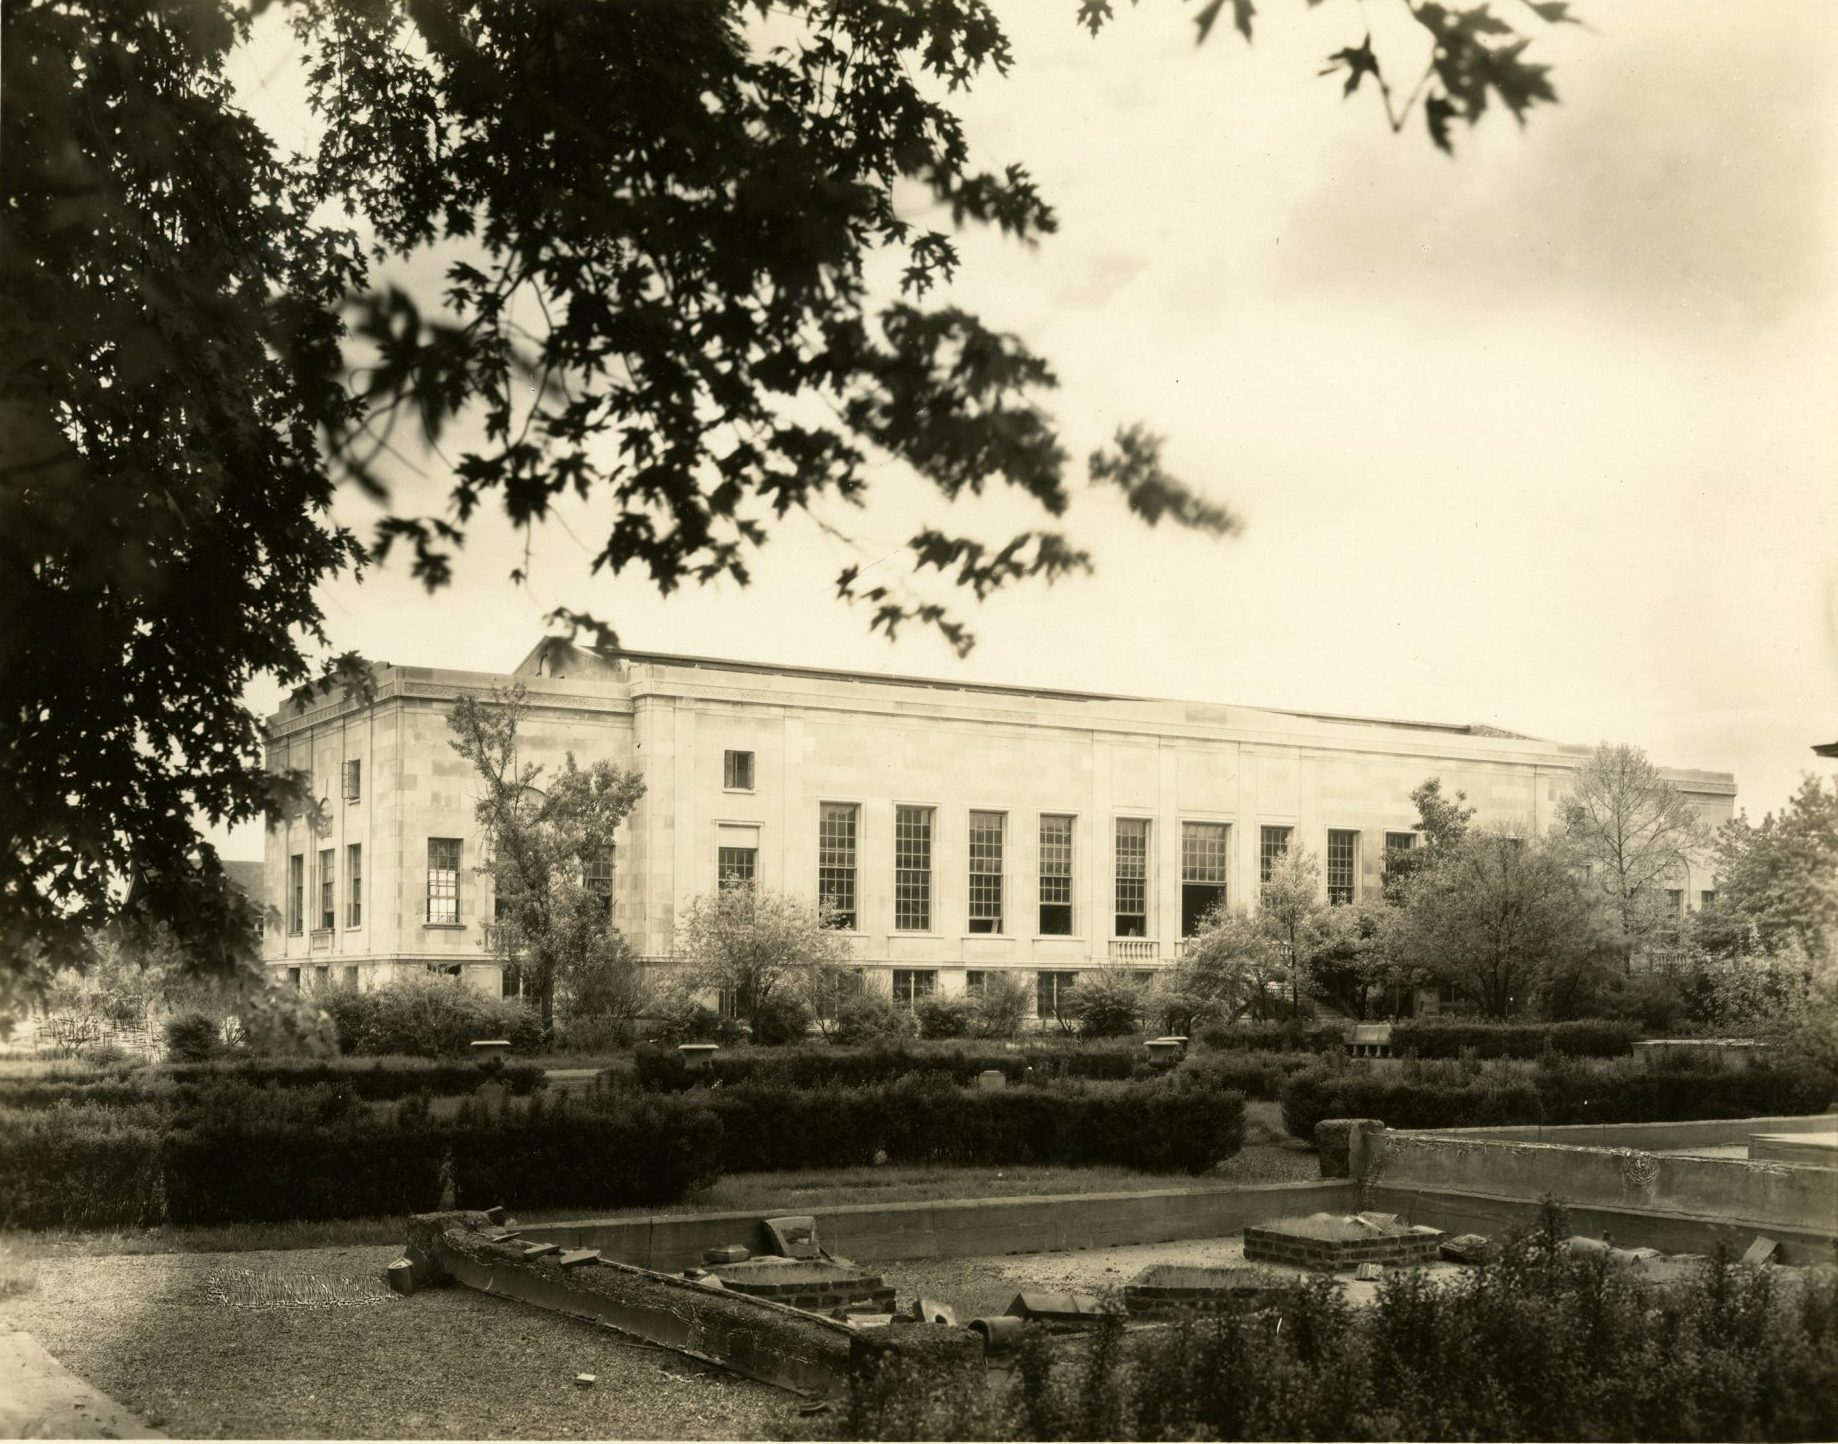 1927 photograph of Bixby Hall on the campus of Washington University in St. Louis.